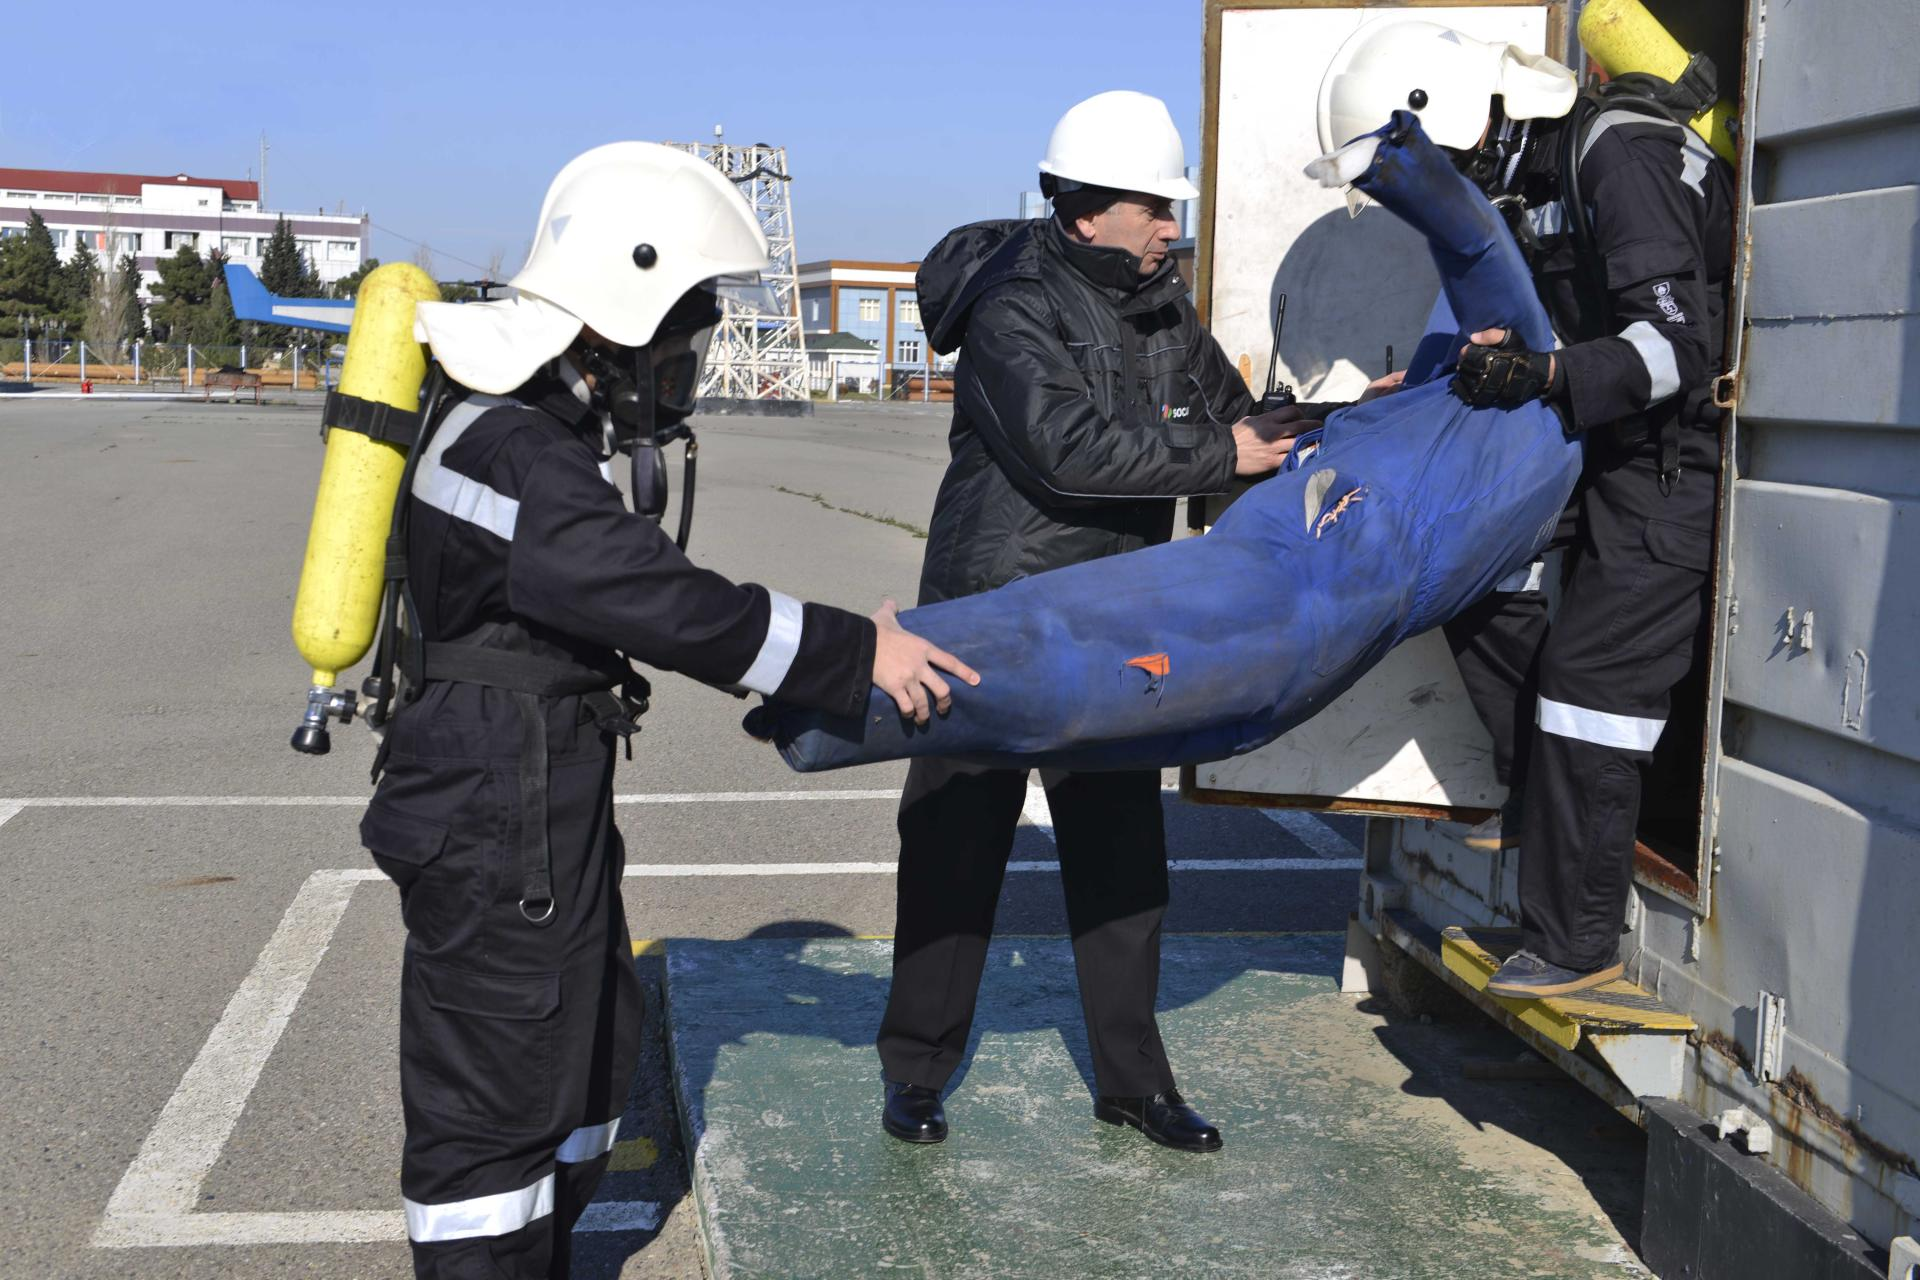 Safety training for BHOS students conducted at SOCAR (PHOTO)